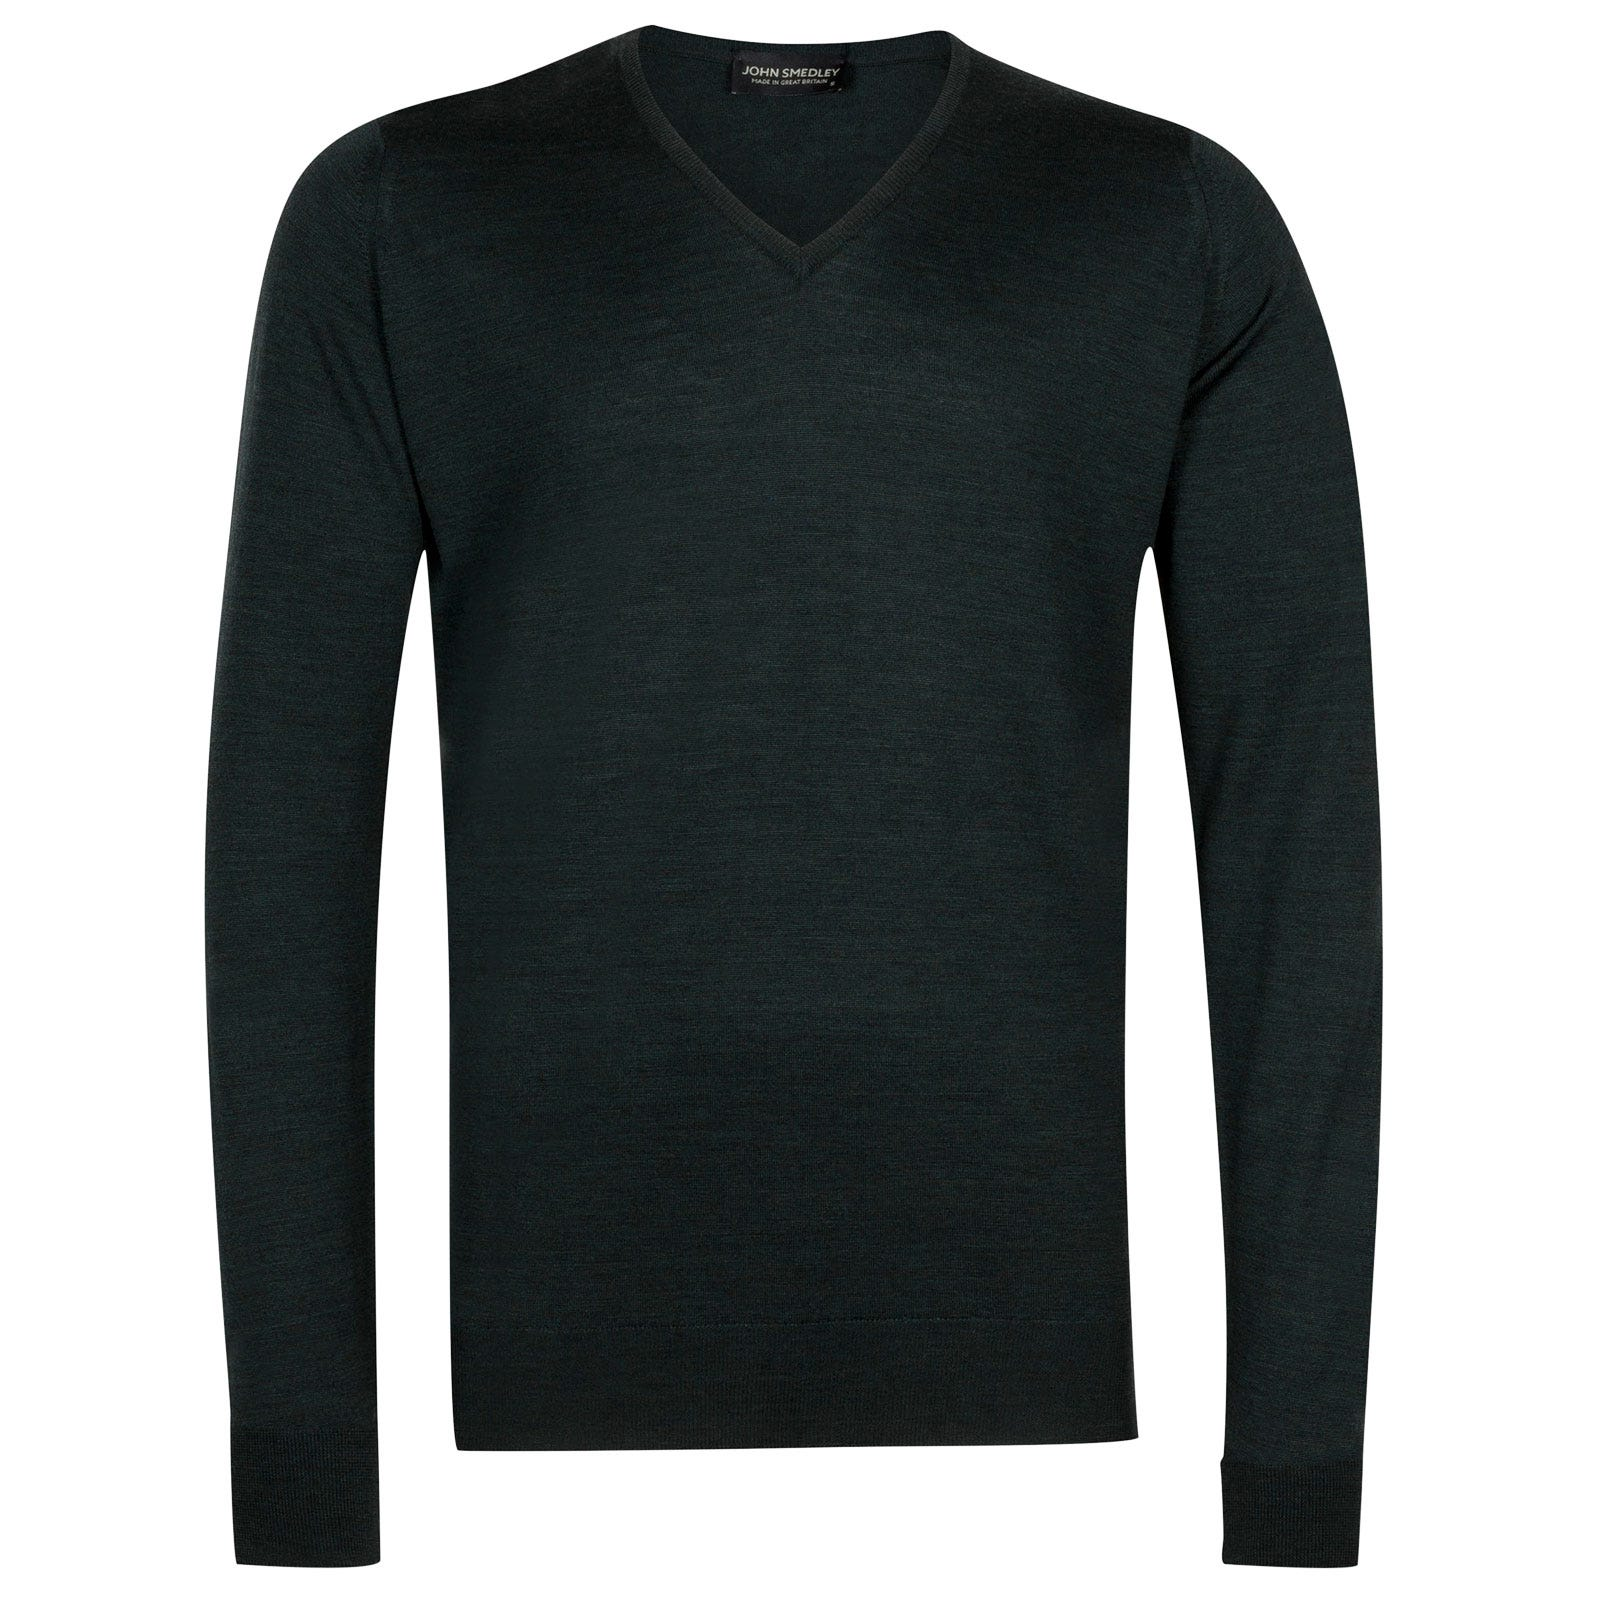 John Smedley bobby Merino Wool Pullover in Racing Green-XL